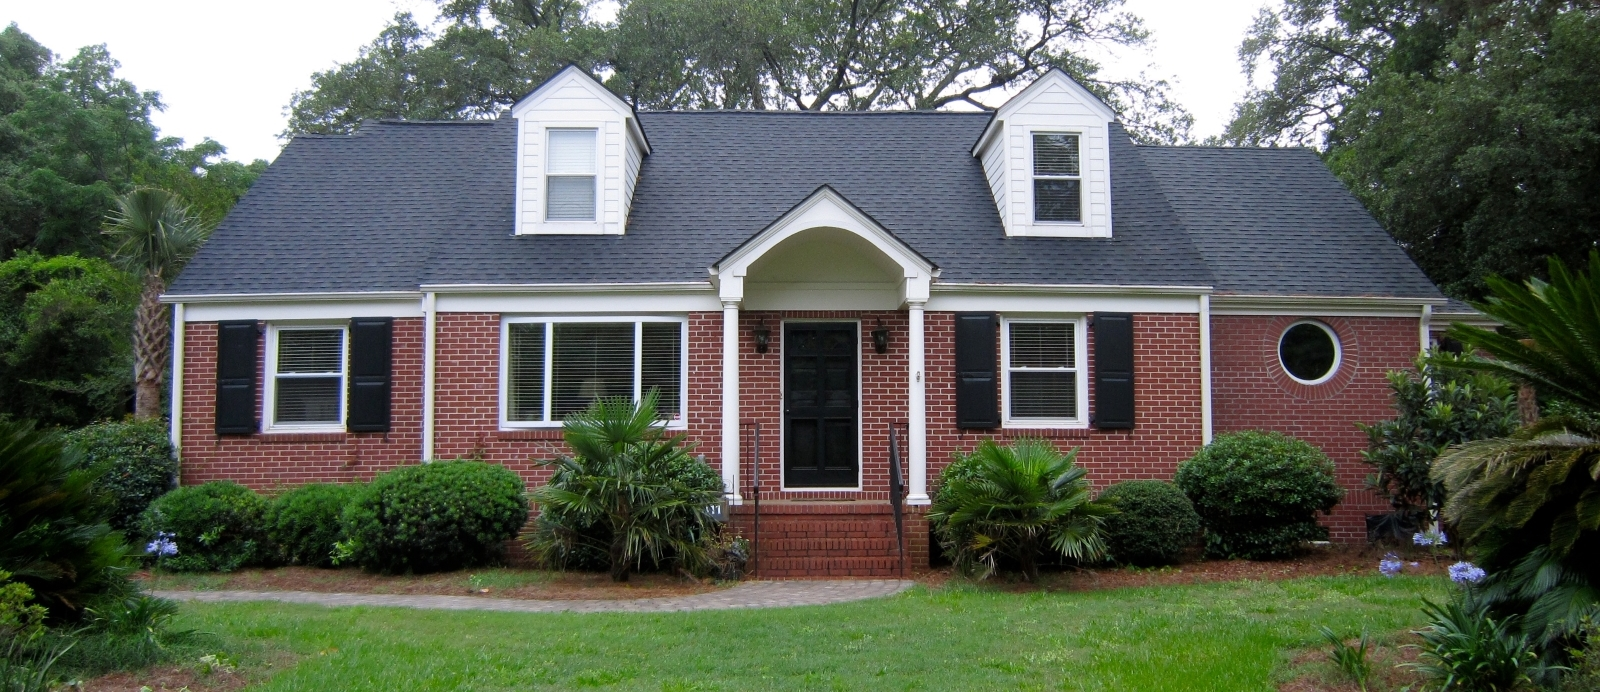 brick-home-cropped-short